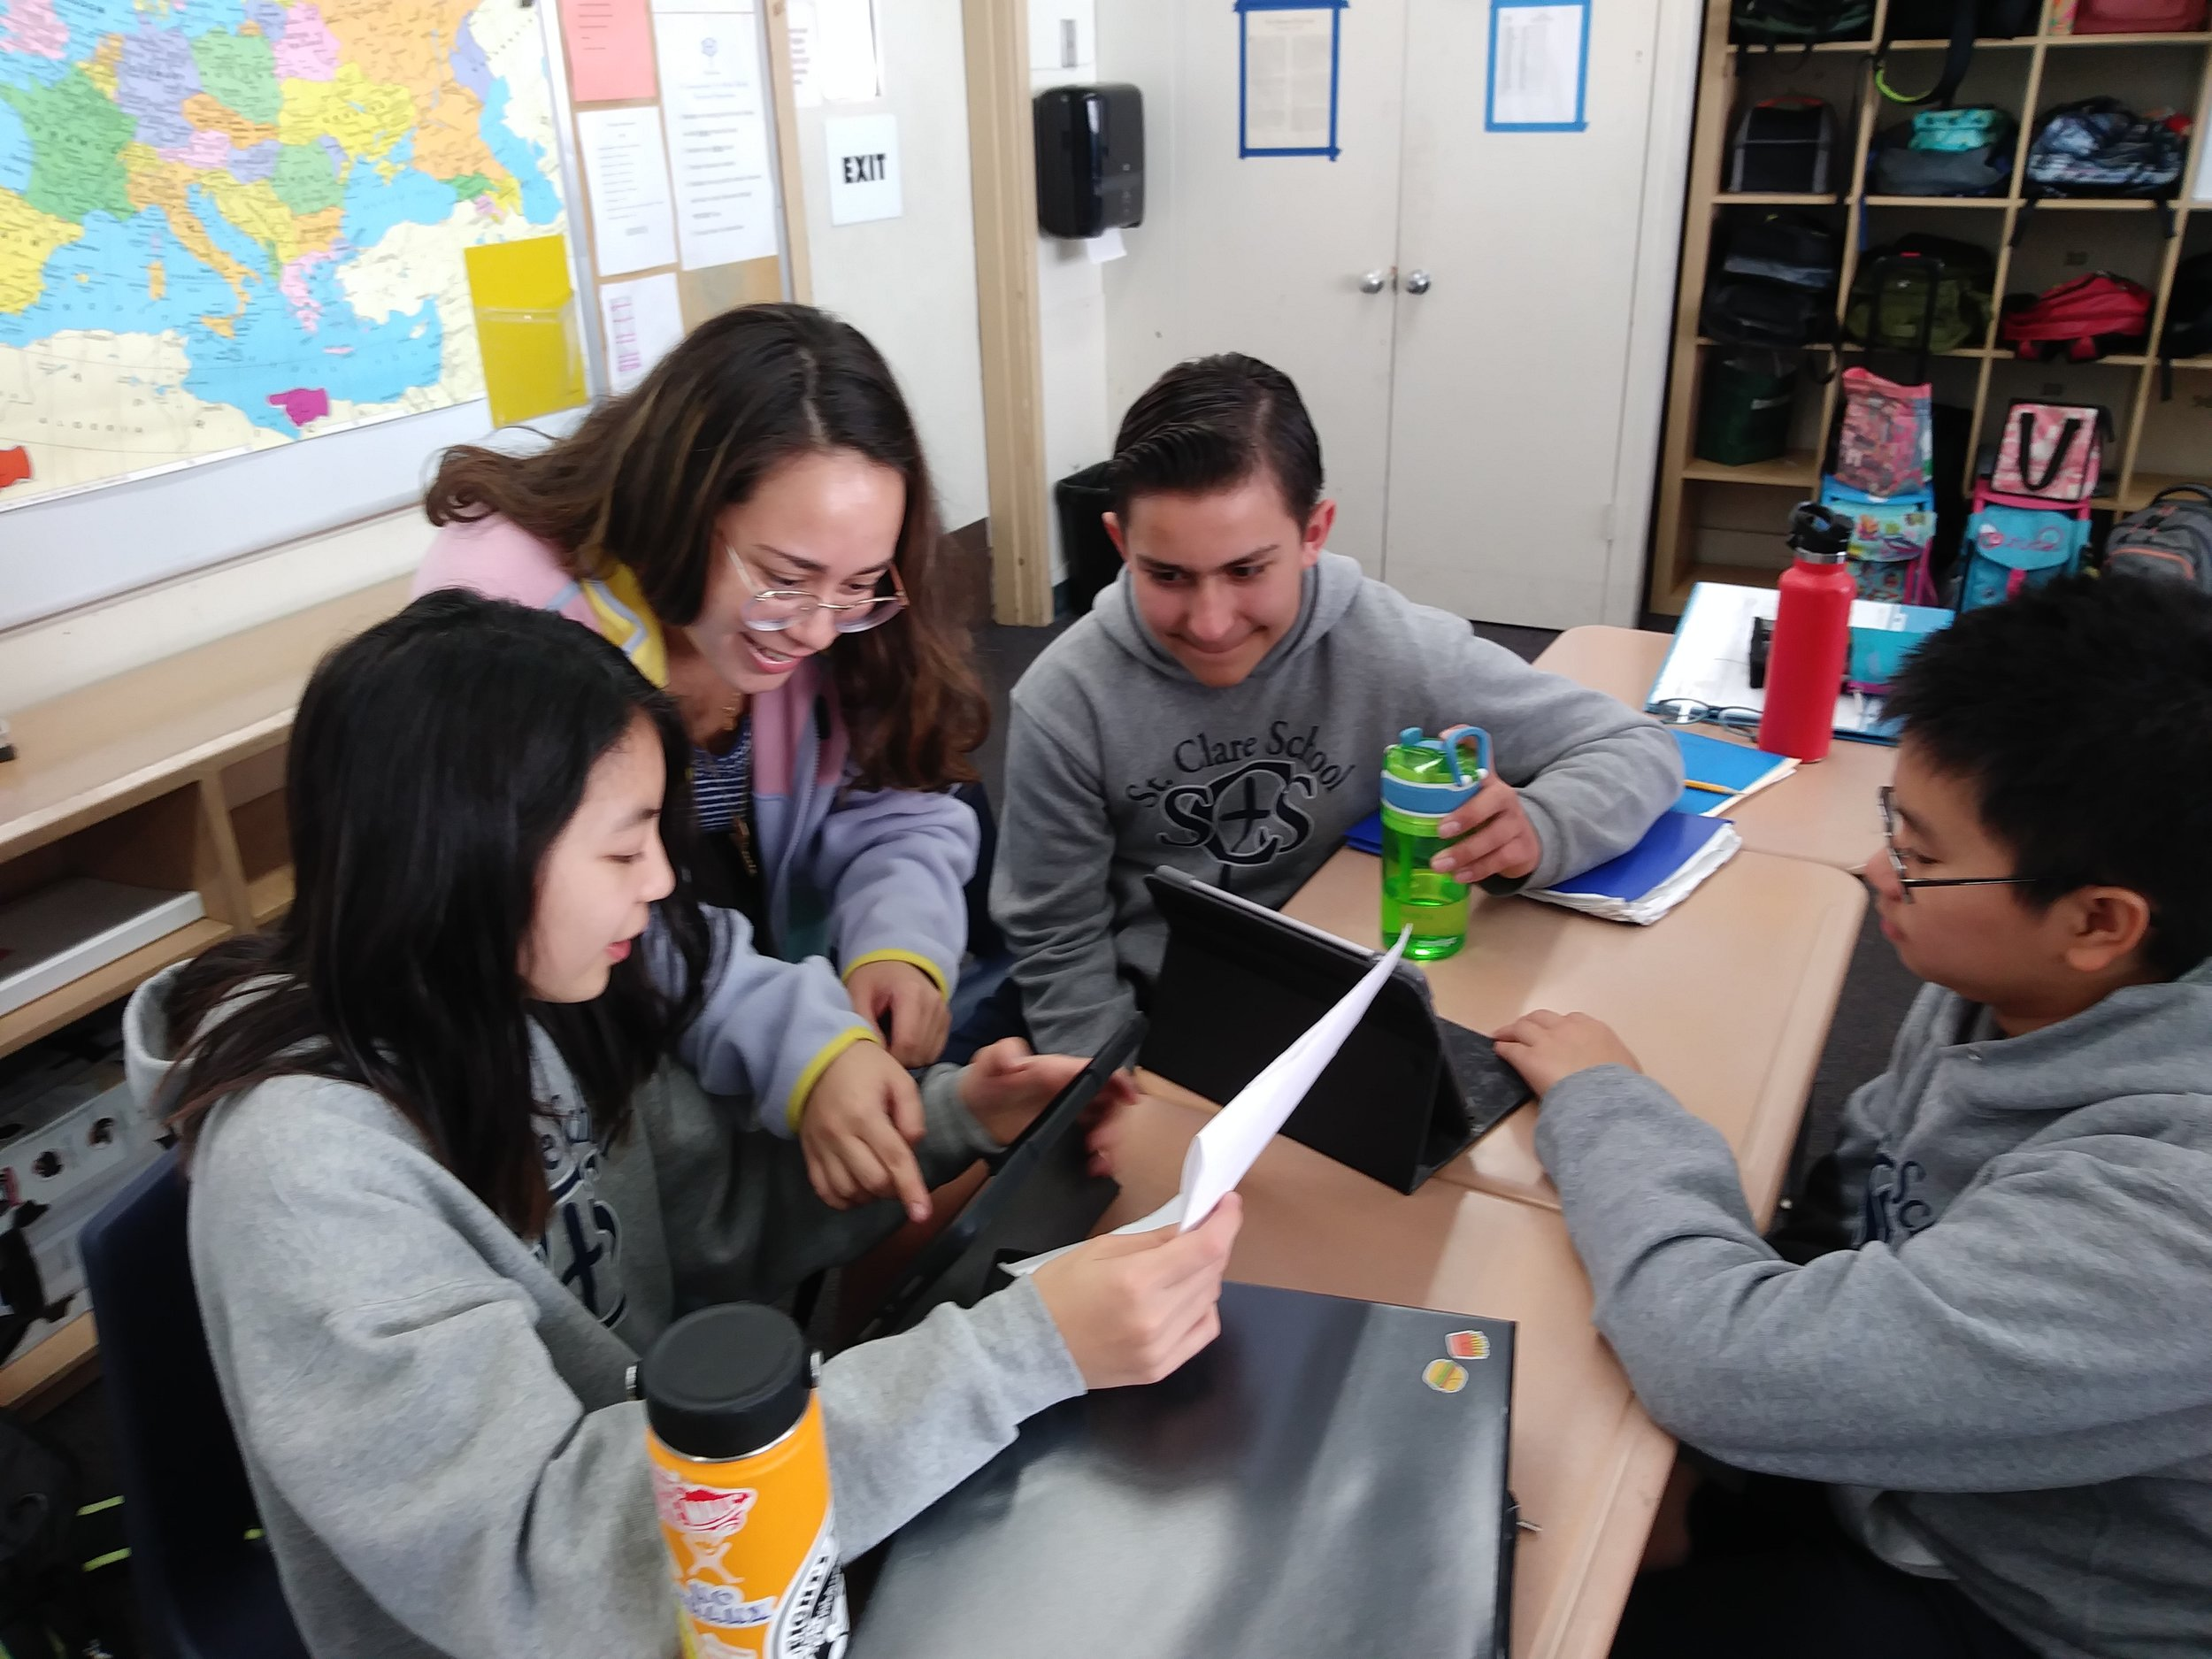 St Clare School - Blended Learning